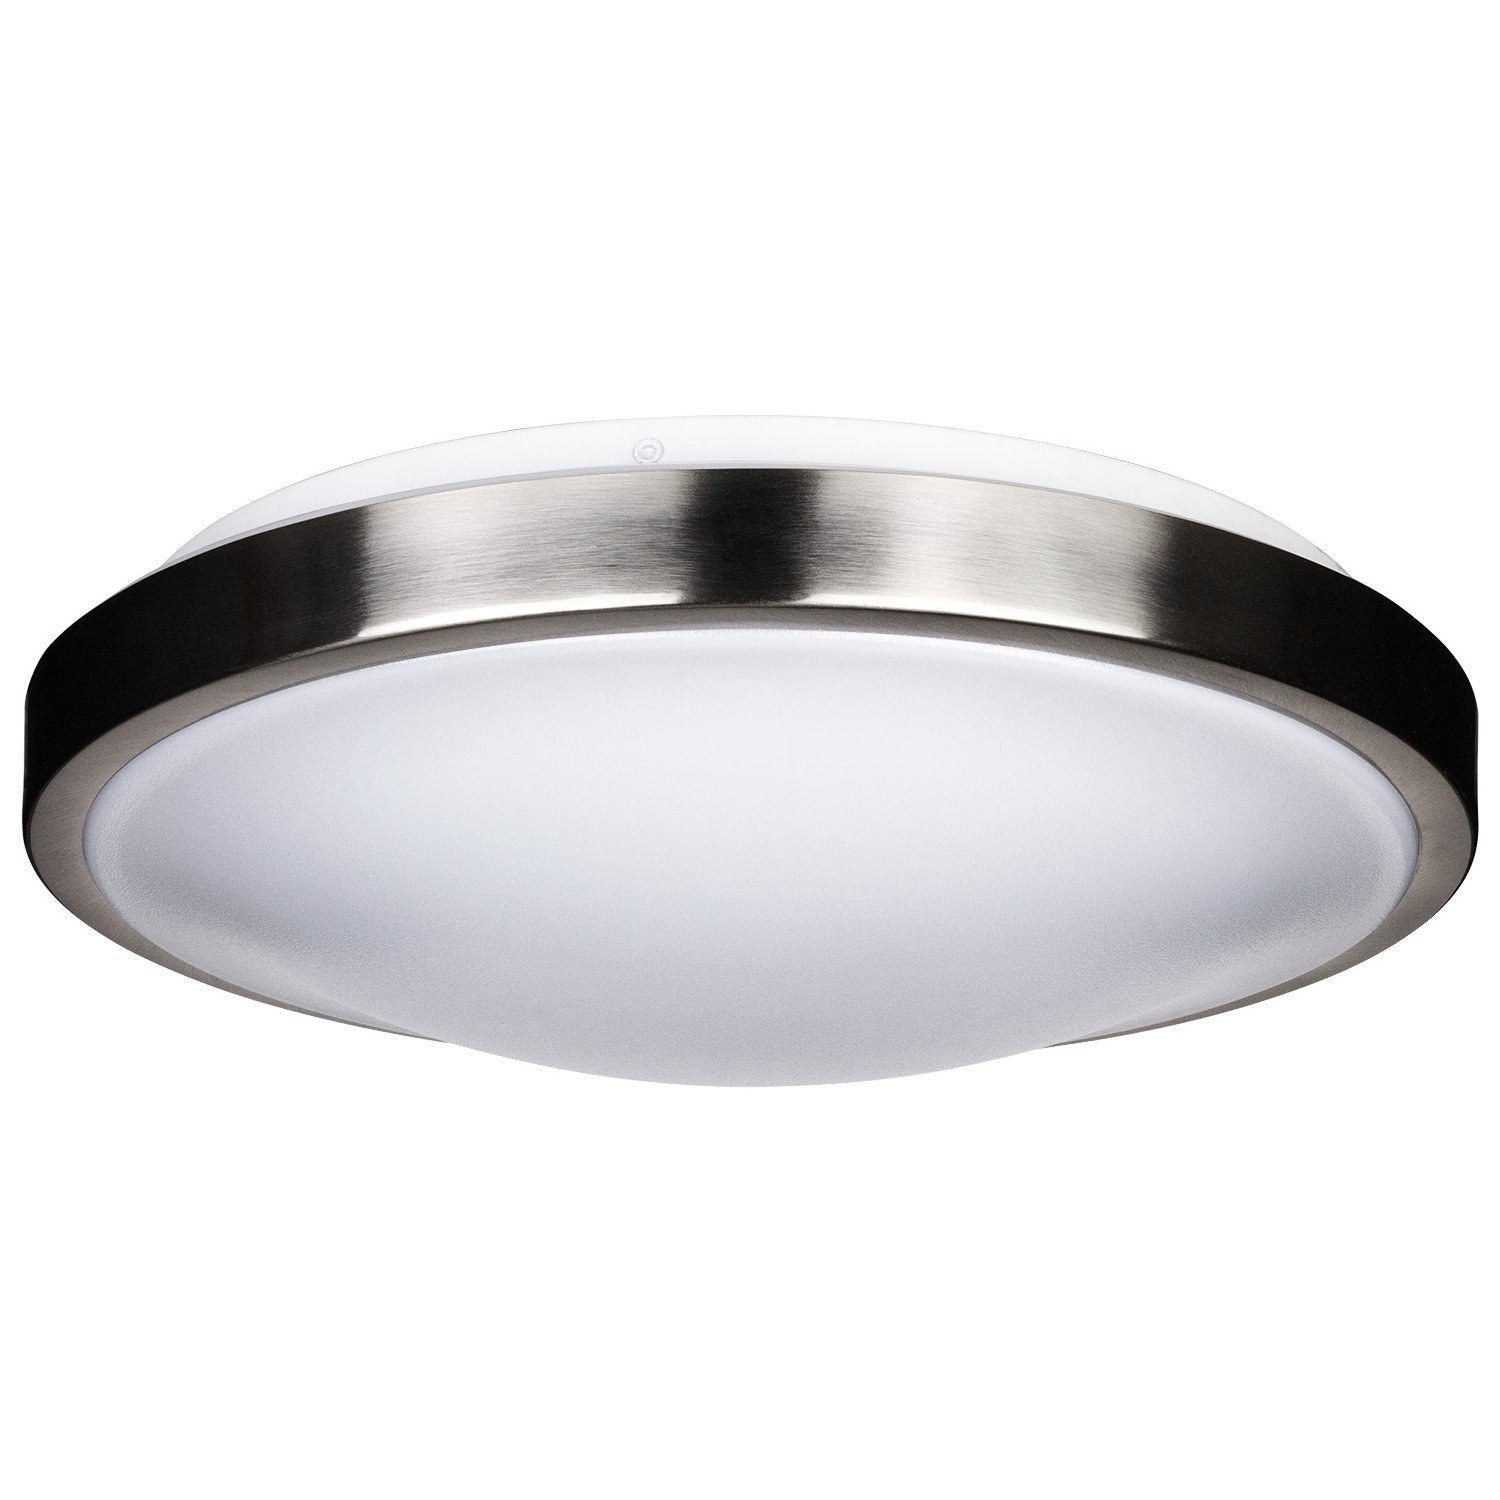 com mount product led lowes display shop for at reviews white fans light lighting w lights ceiling in flush pl